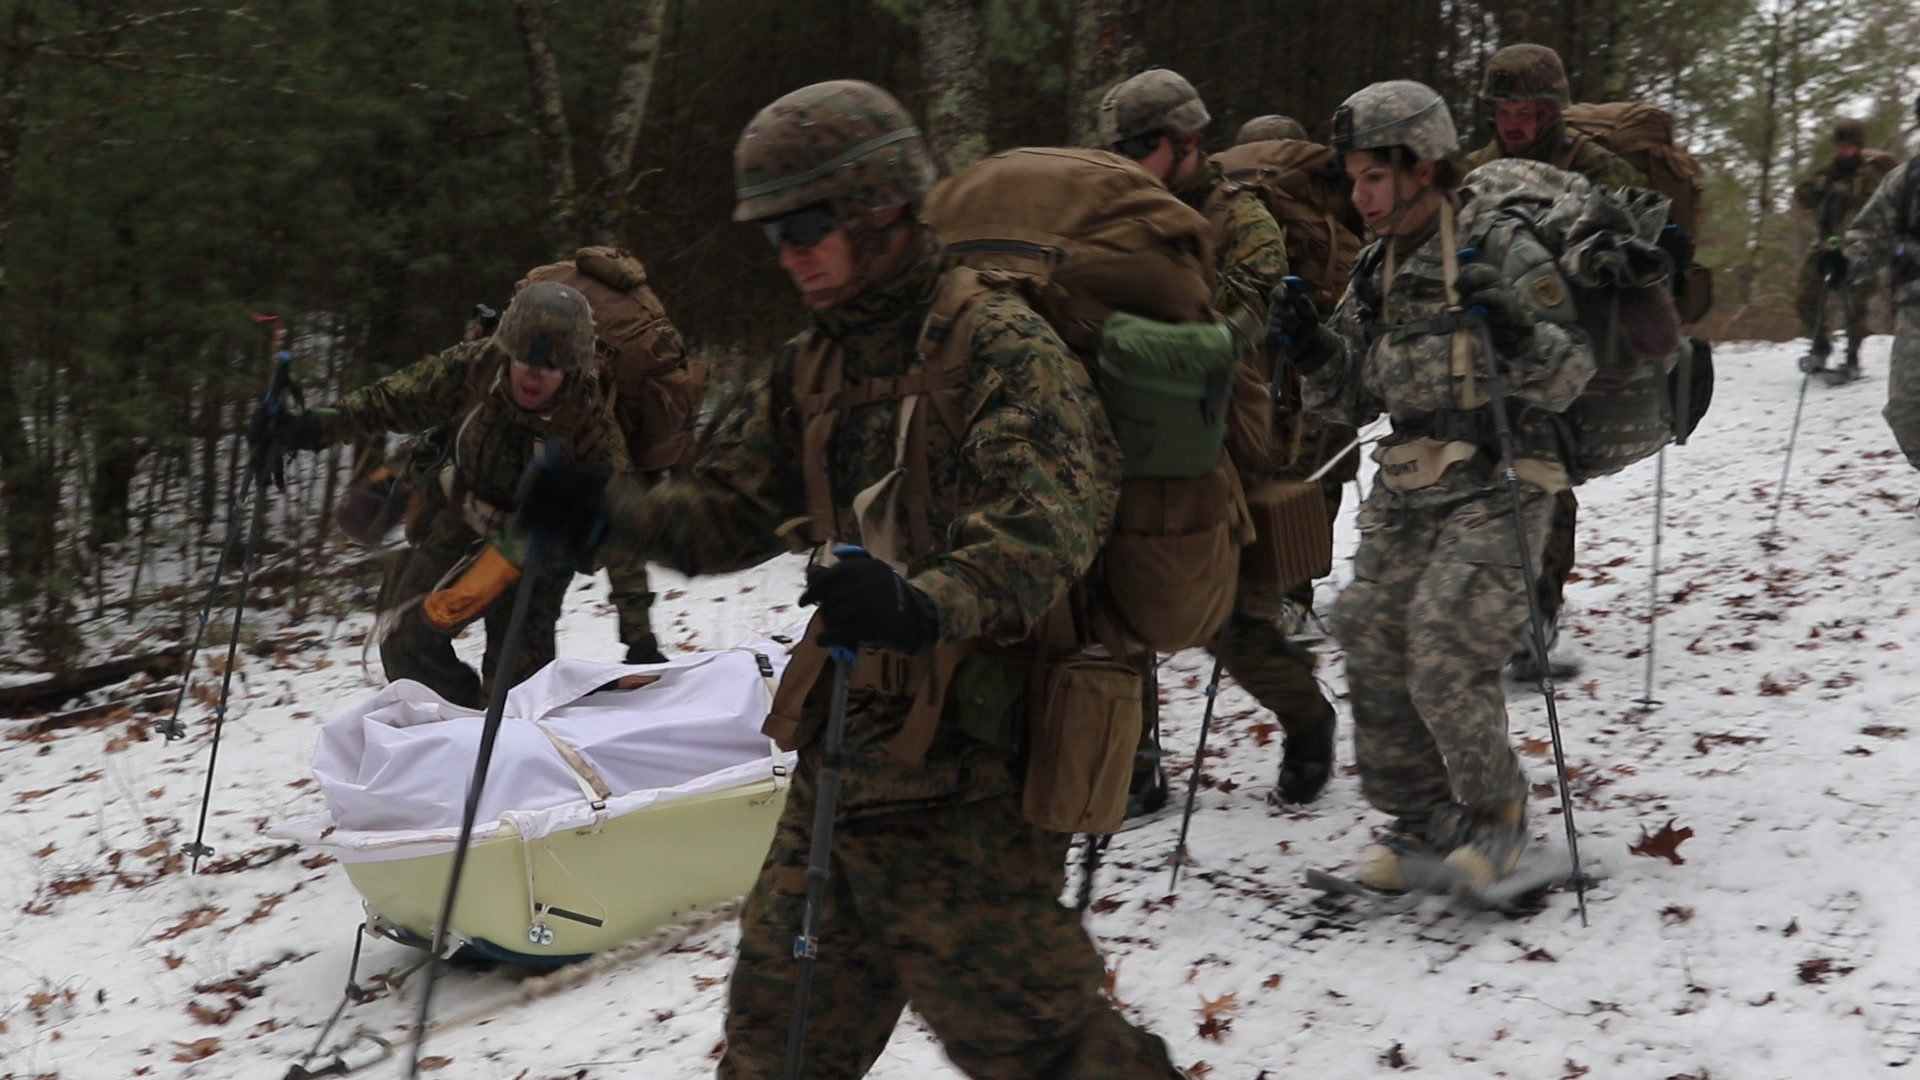 US 3rd Recon Marines Planning Observation Posts – Japan, Jan. 27, 2020